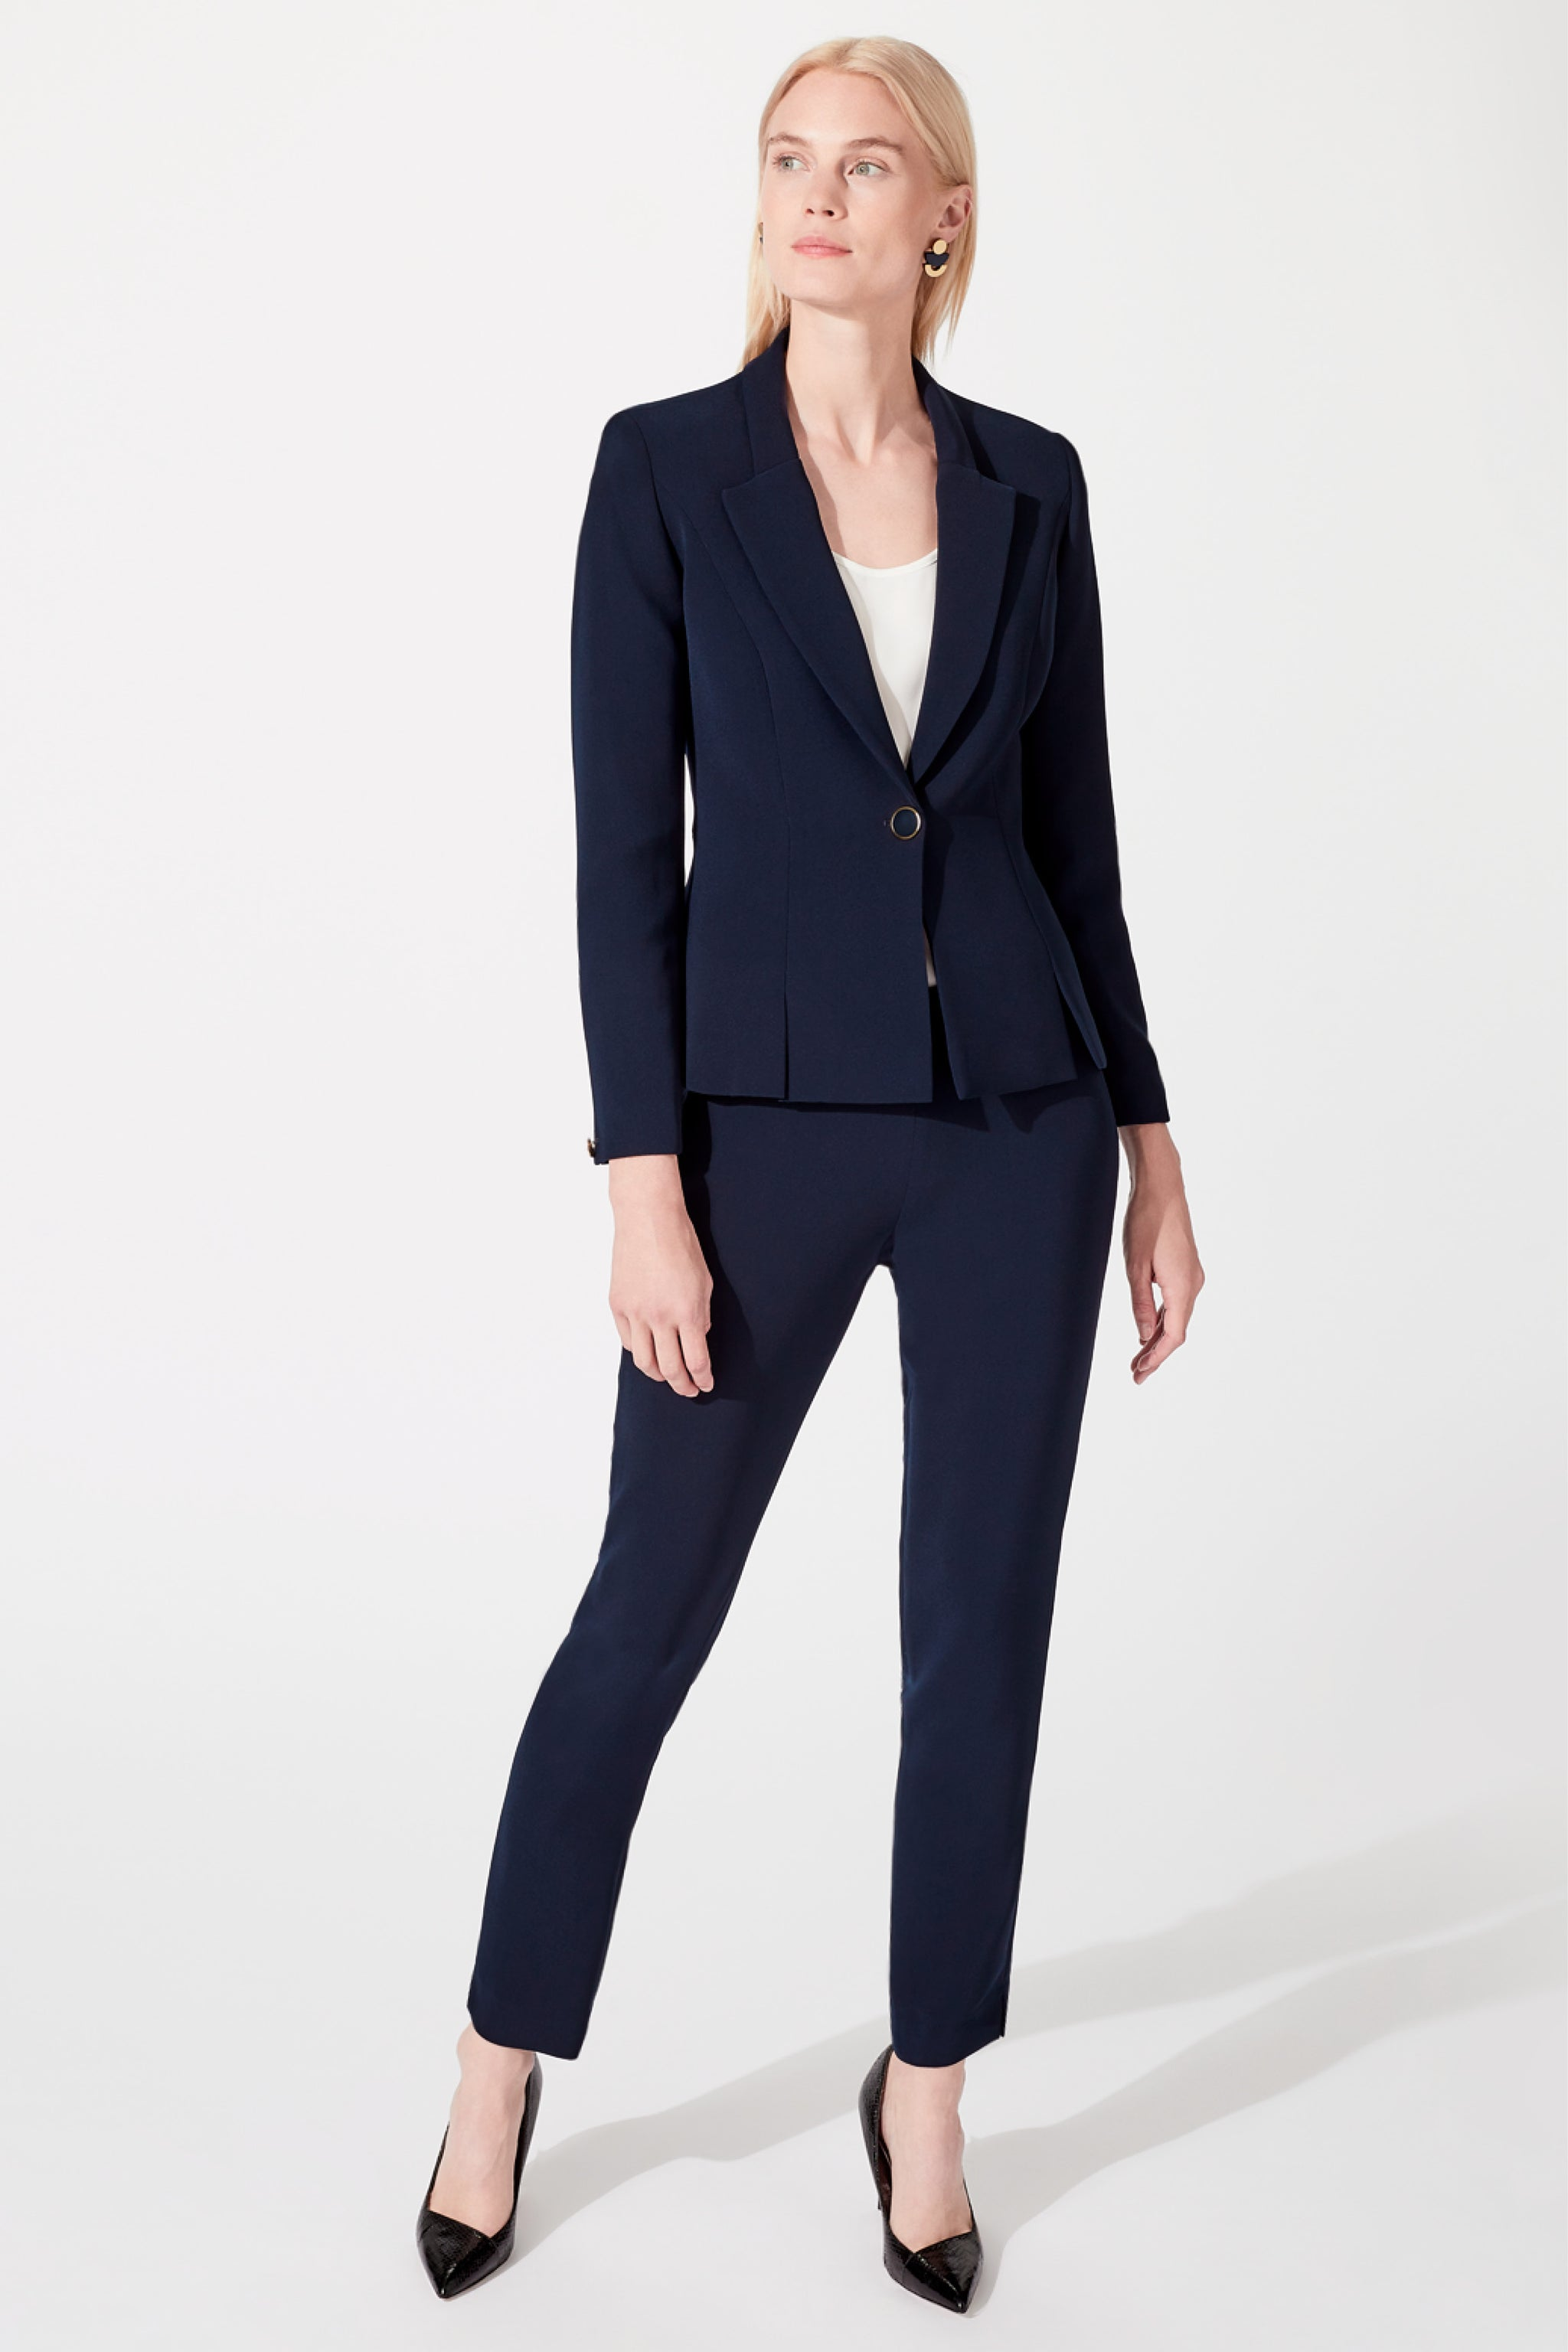 Buckingham Navy Suiting Jacket